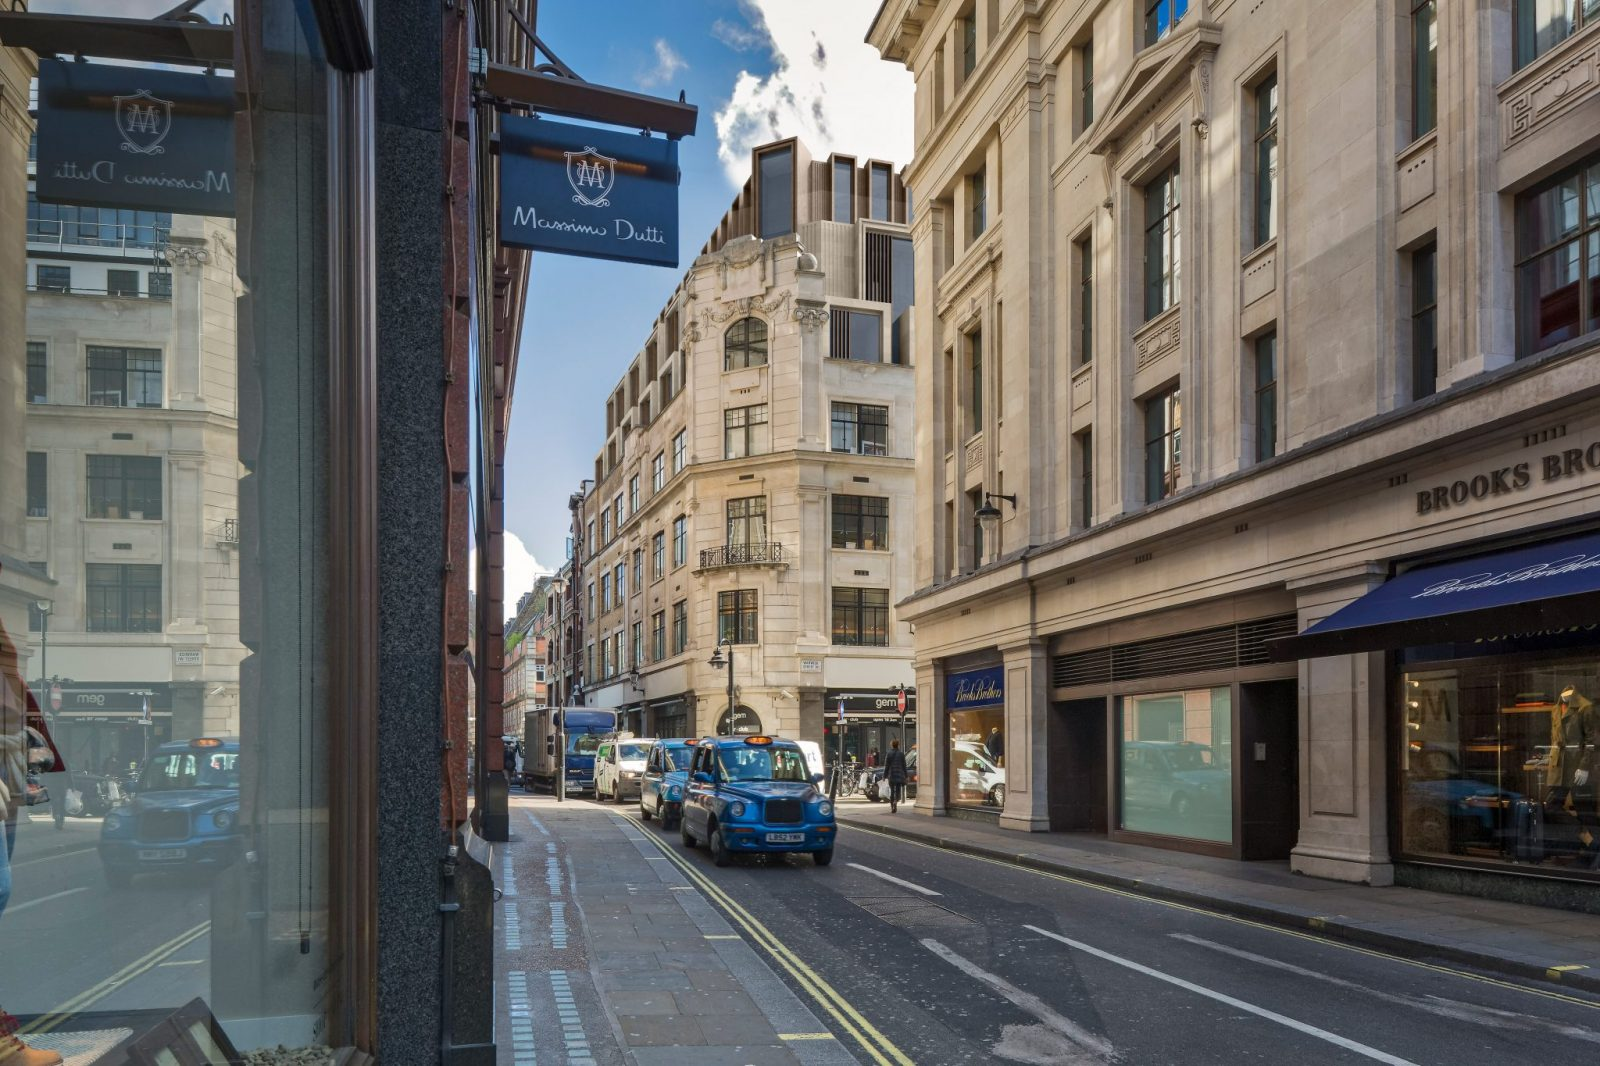 Axtell House - View down Beak Street in Soho